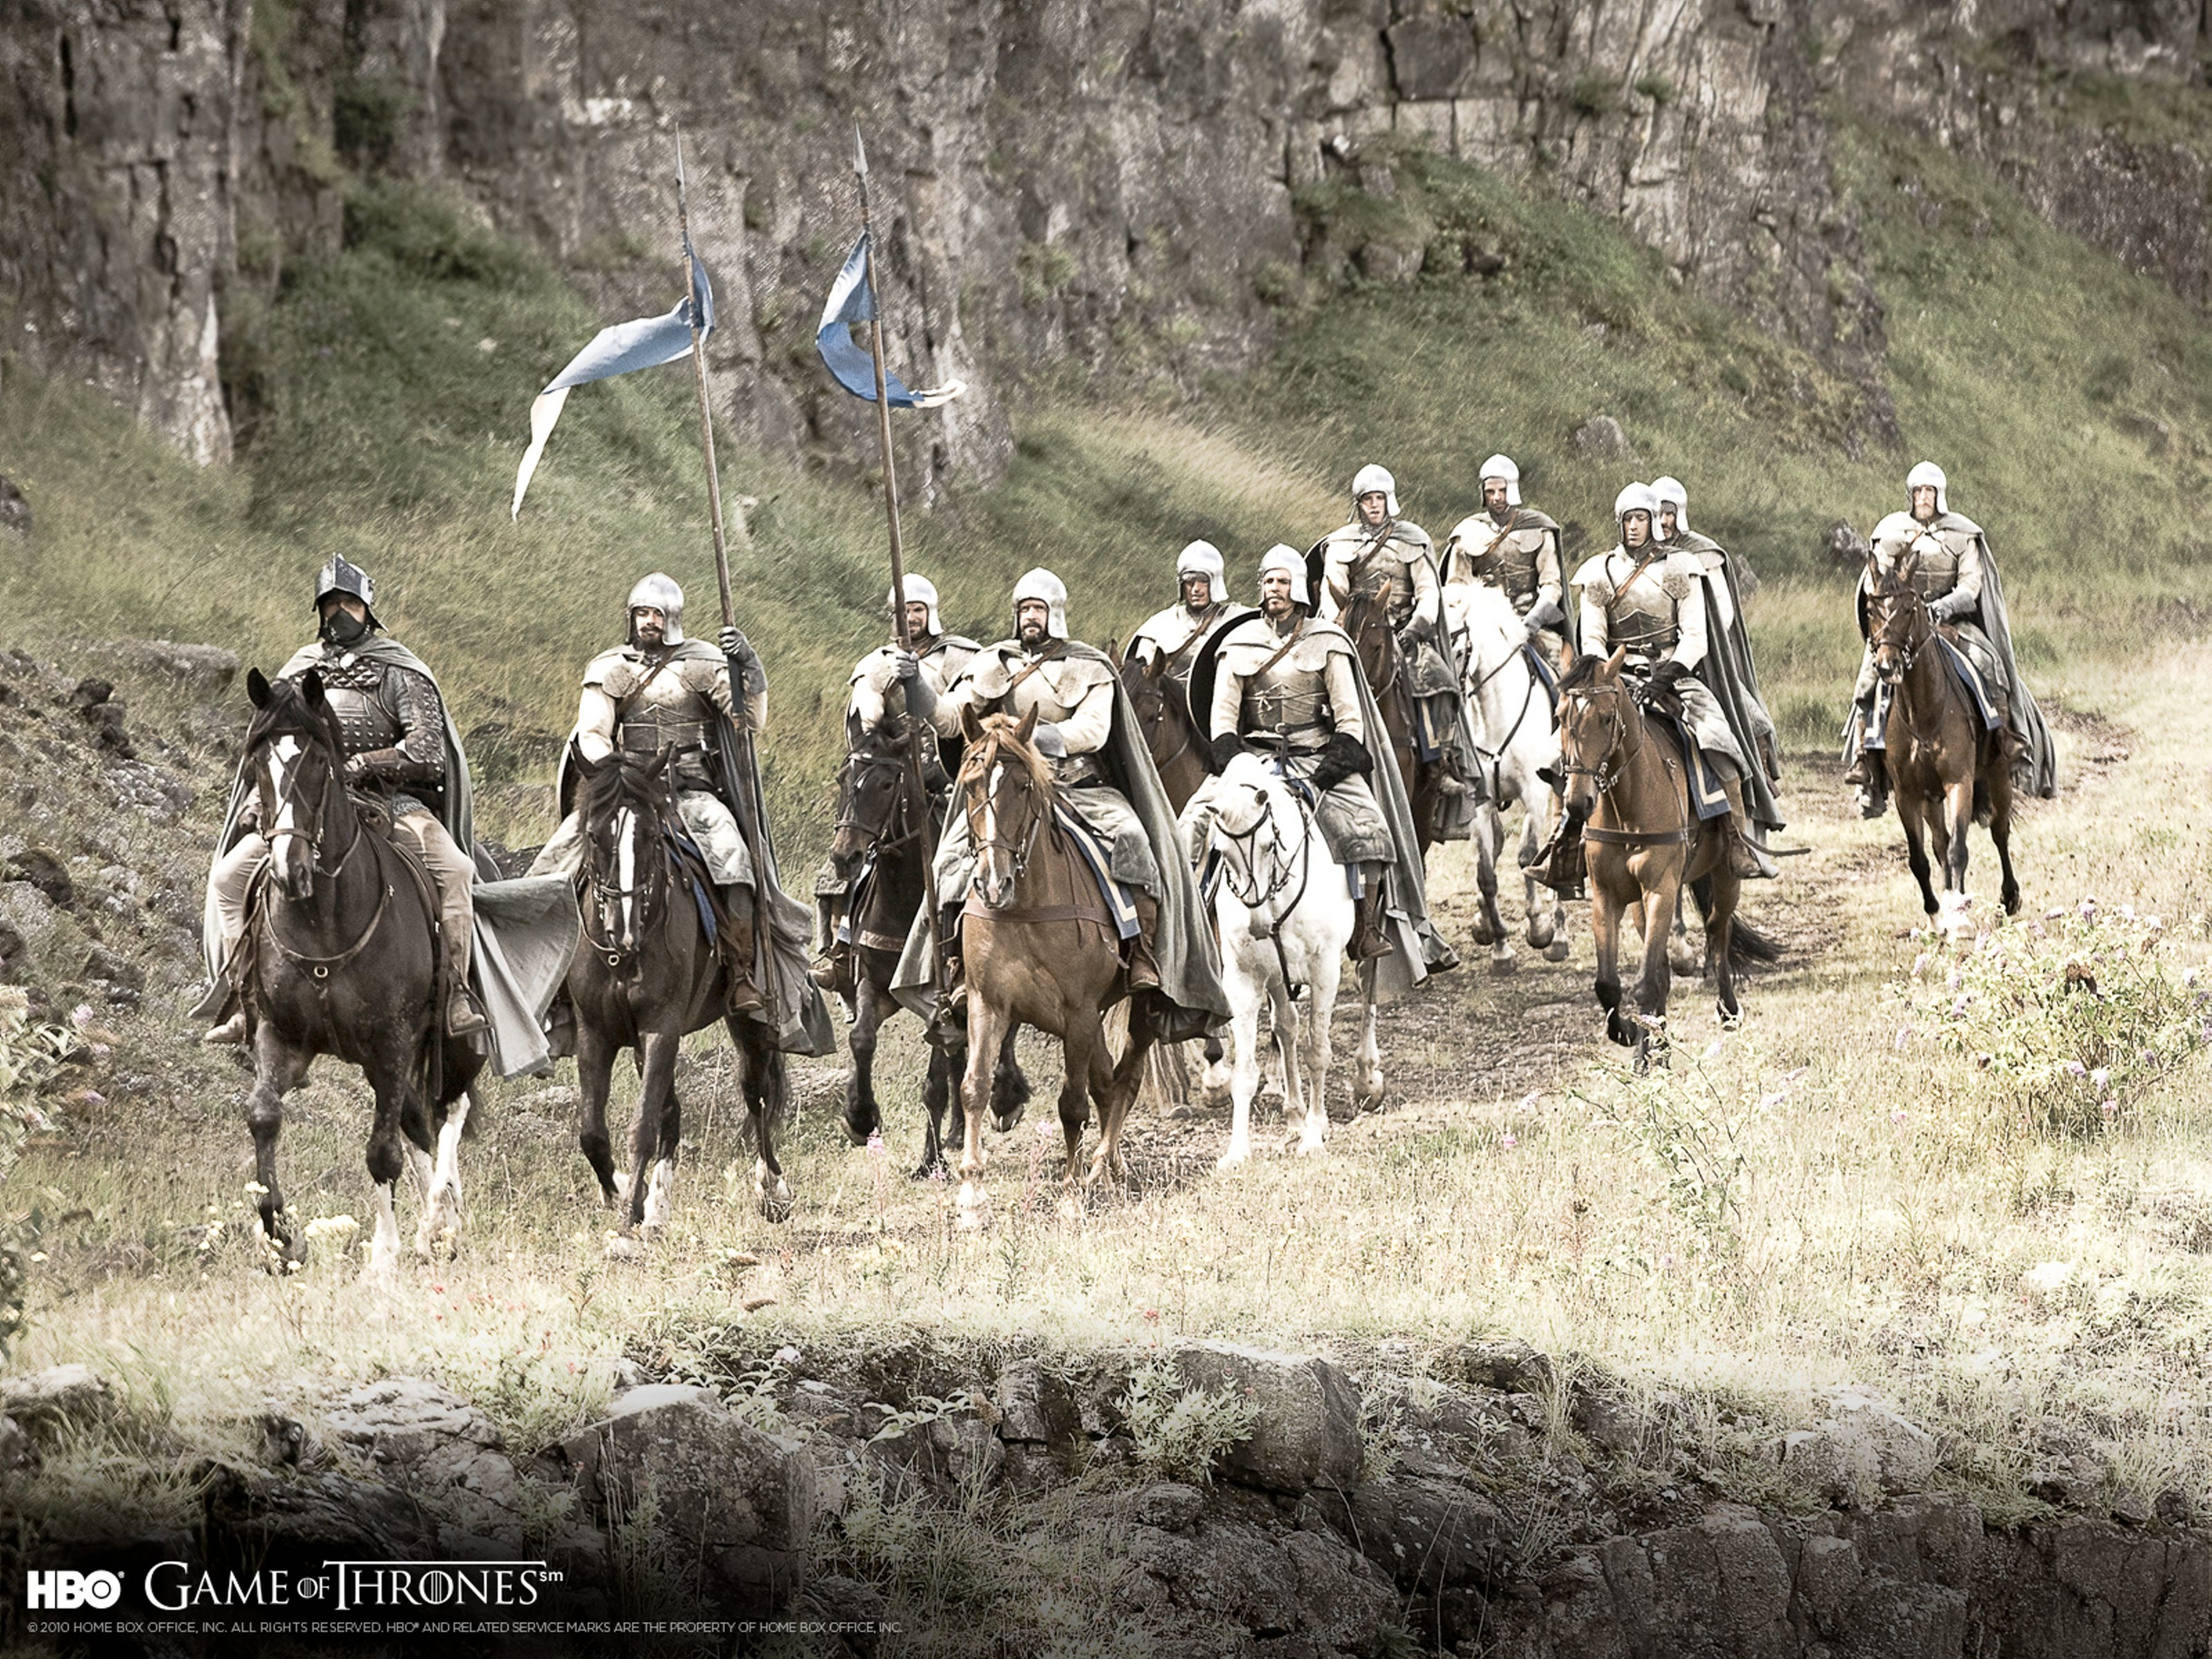 """HBO's """"Game of Thrones"""" leads this year's Emmy nominations with 19."""